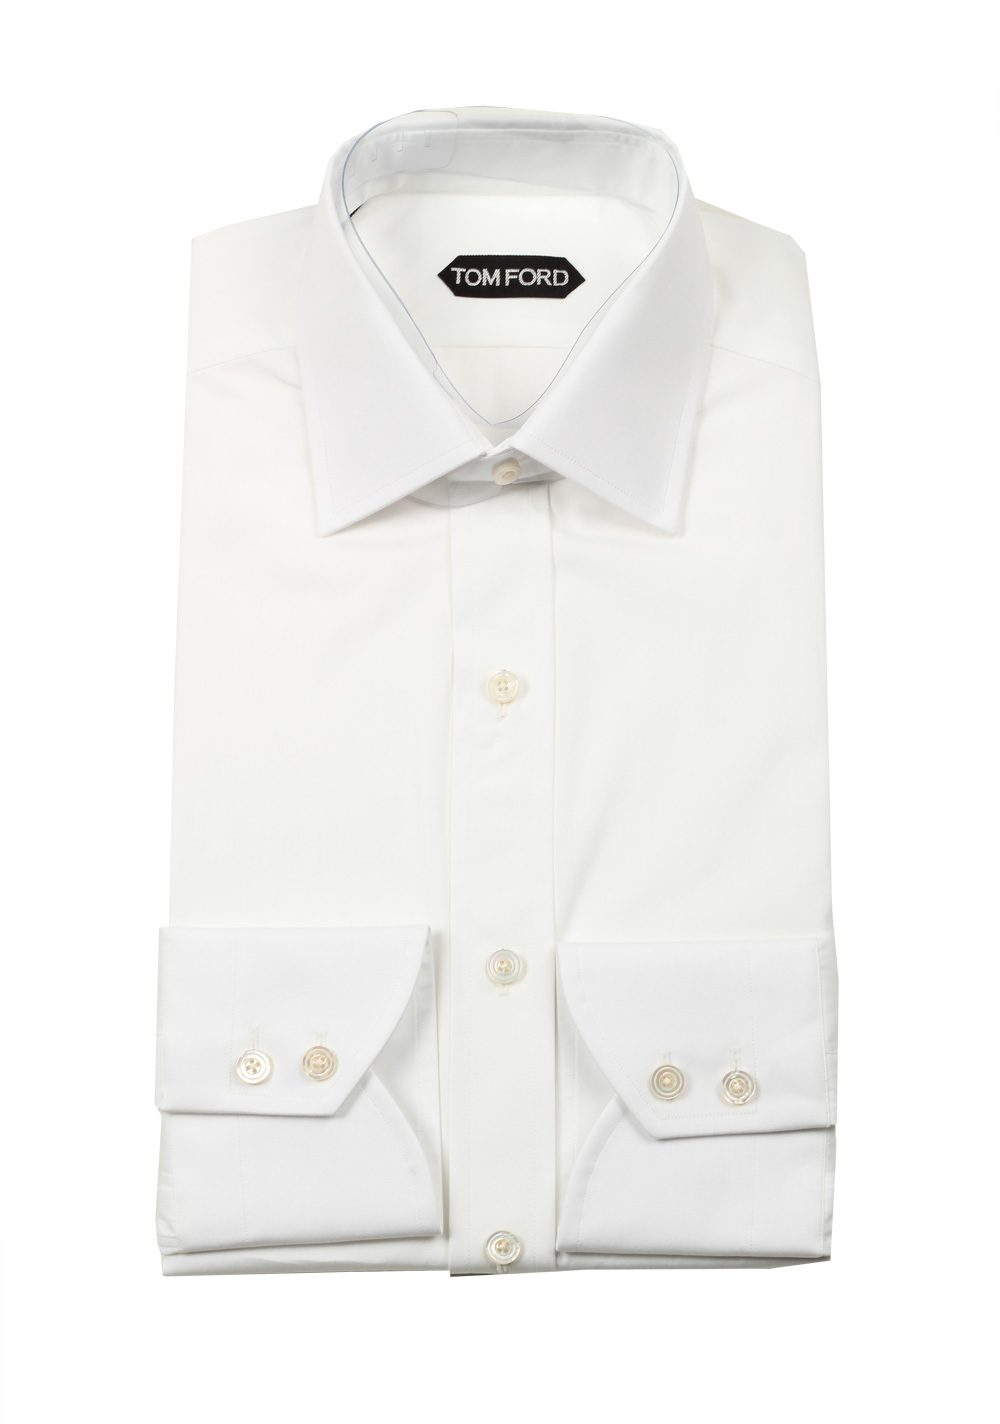 TOM FORD Solid White Dress Shirt Size 39 / 15,5 U.S. | Costume Limité